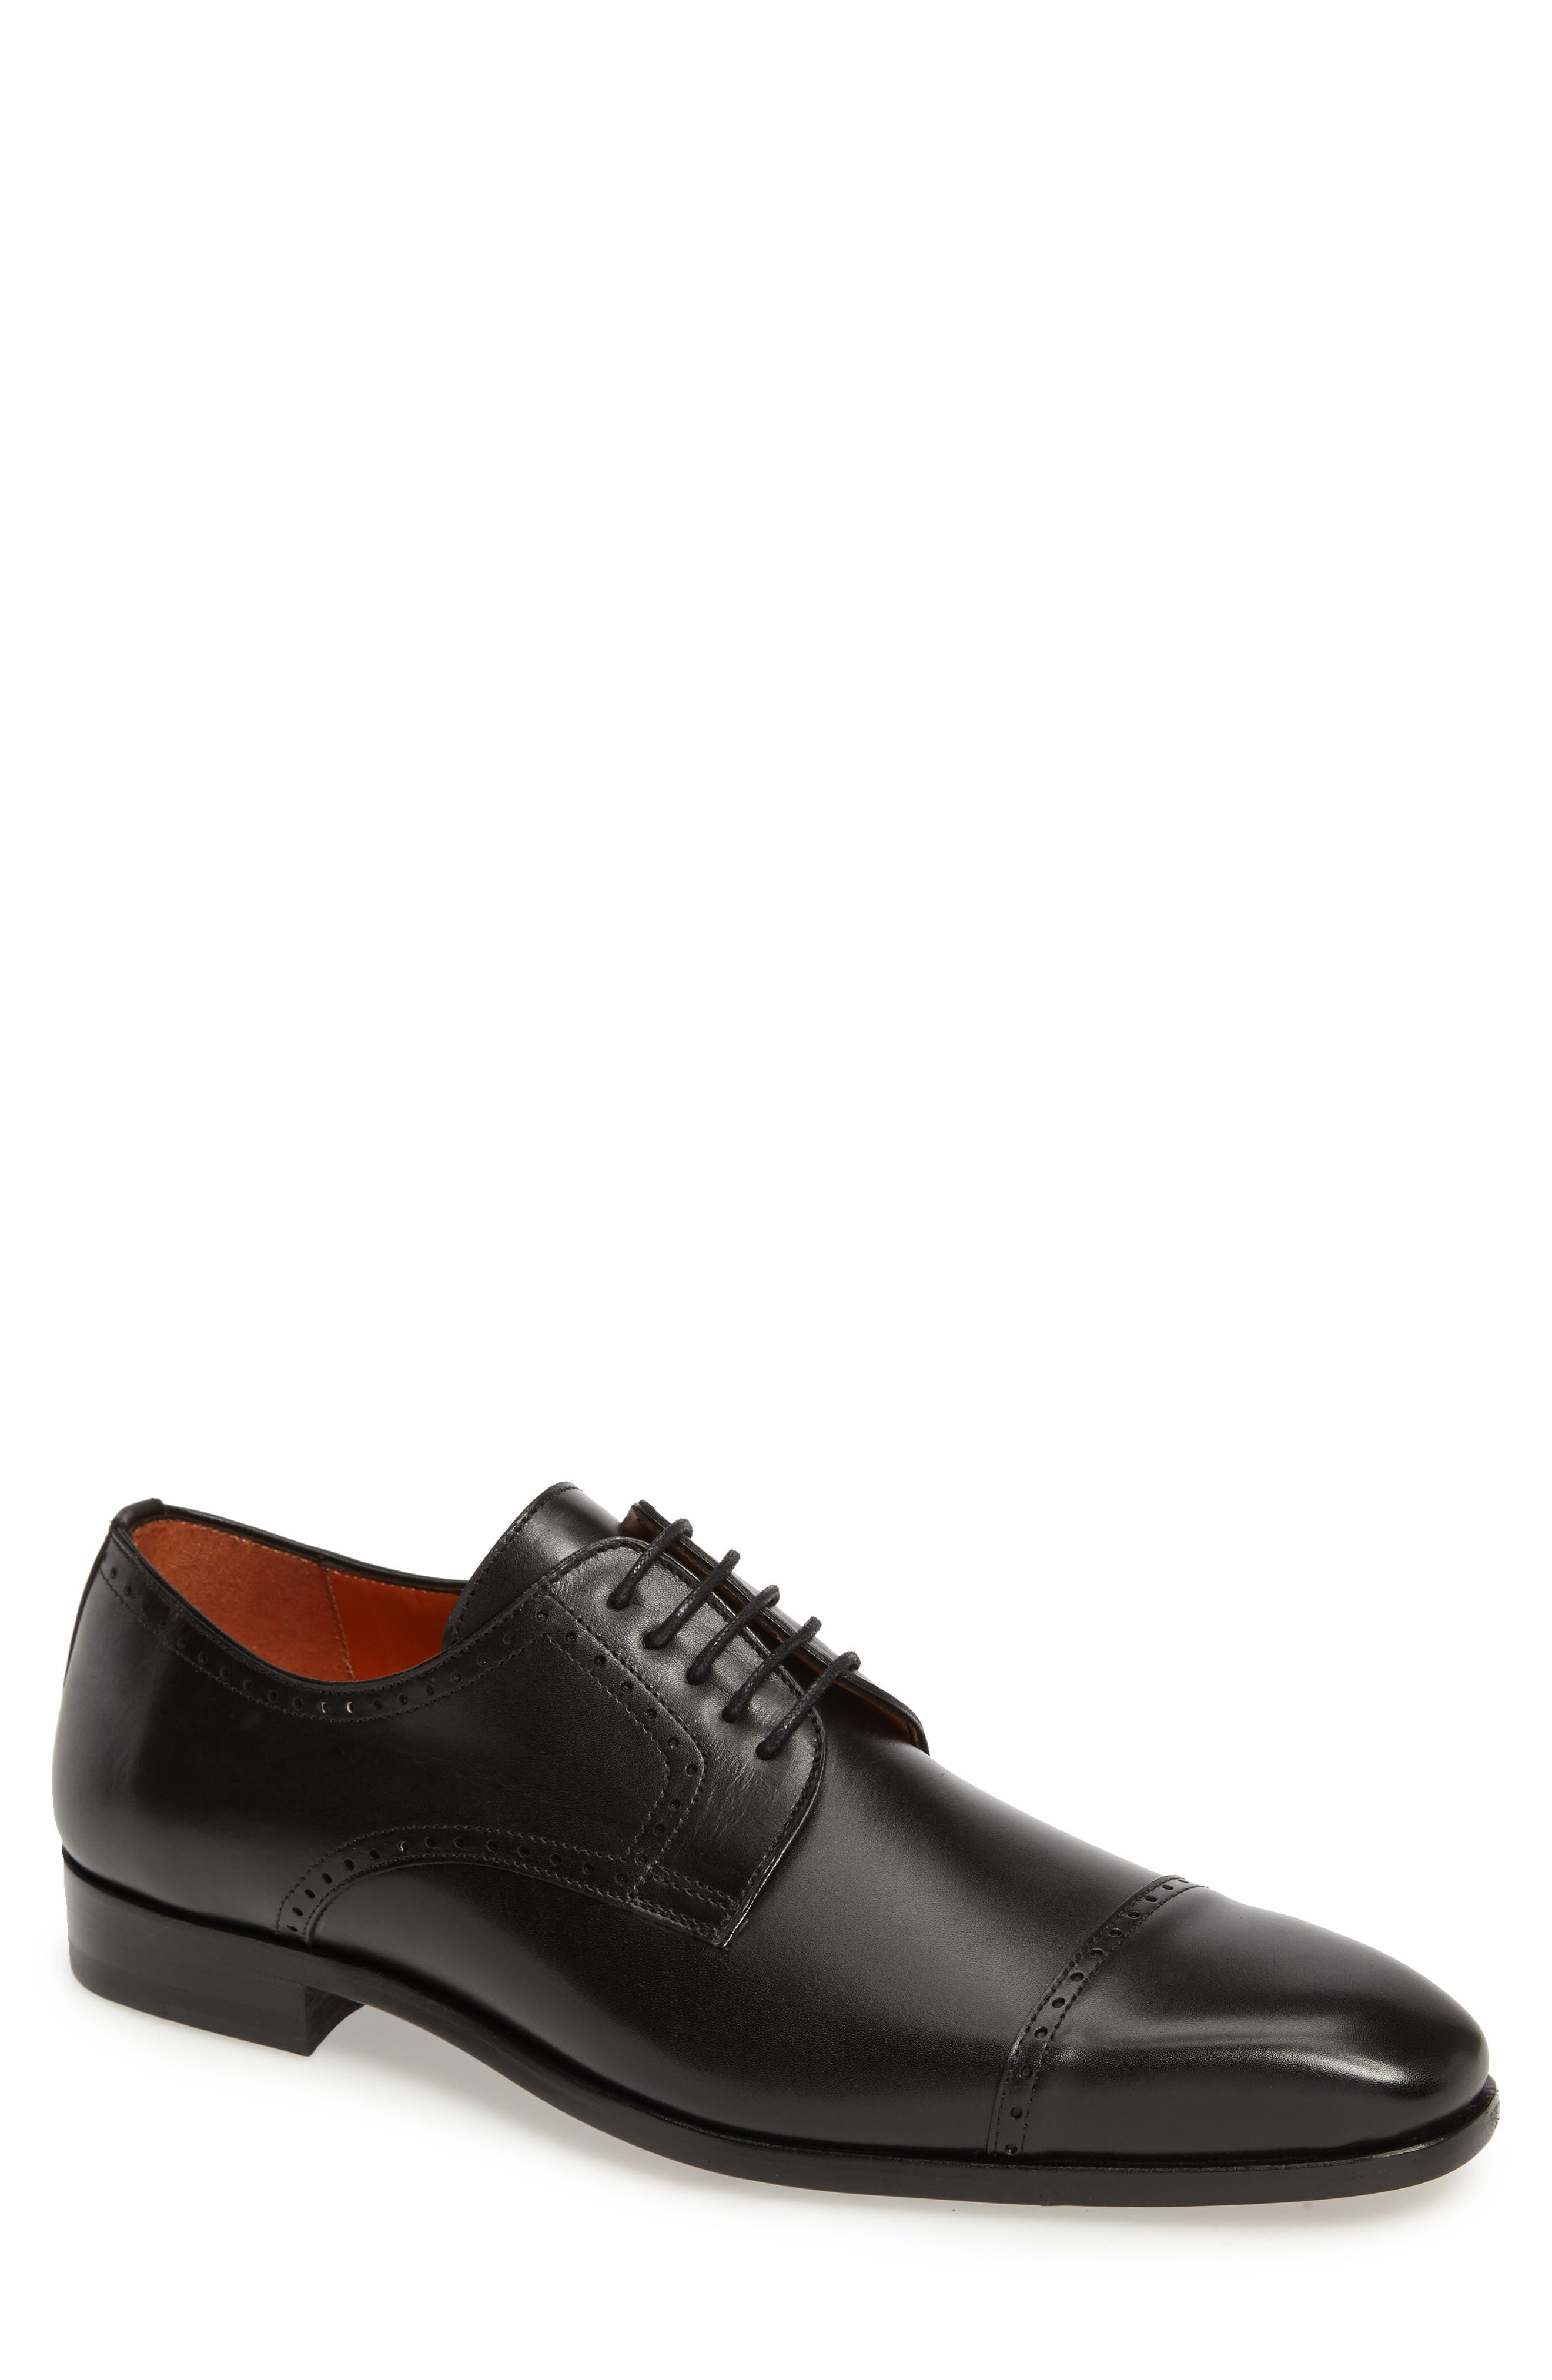 Boas Cap Toe Oxford,                         Main,                         color, BLACK LEATHER